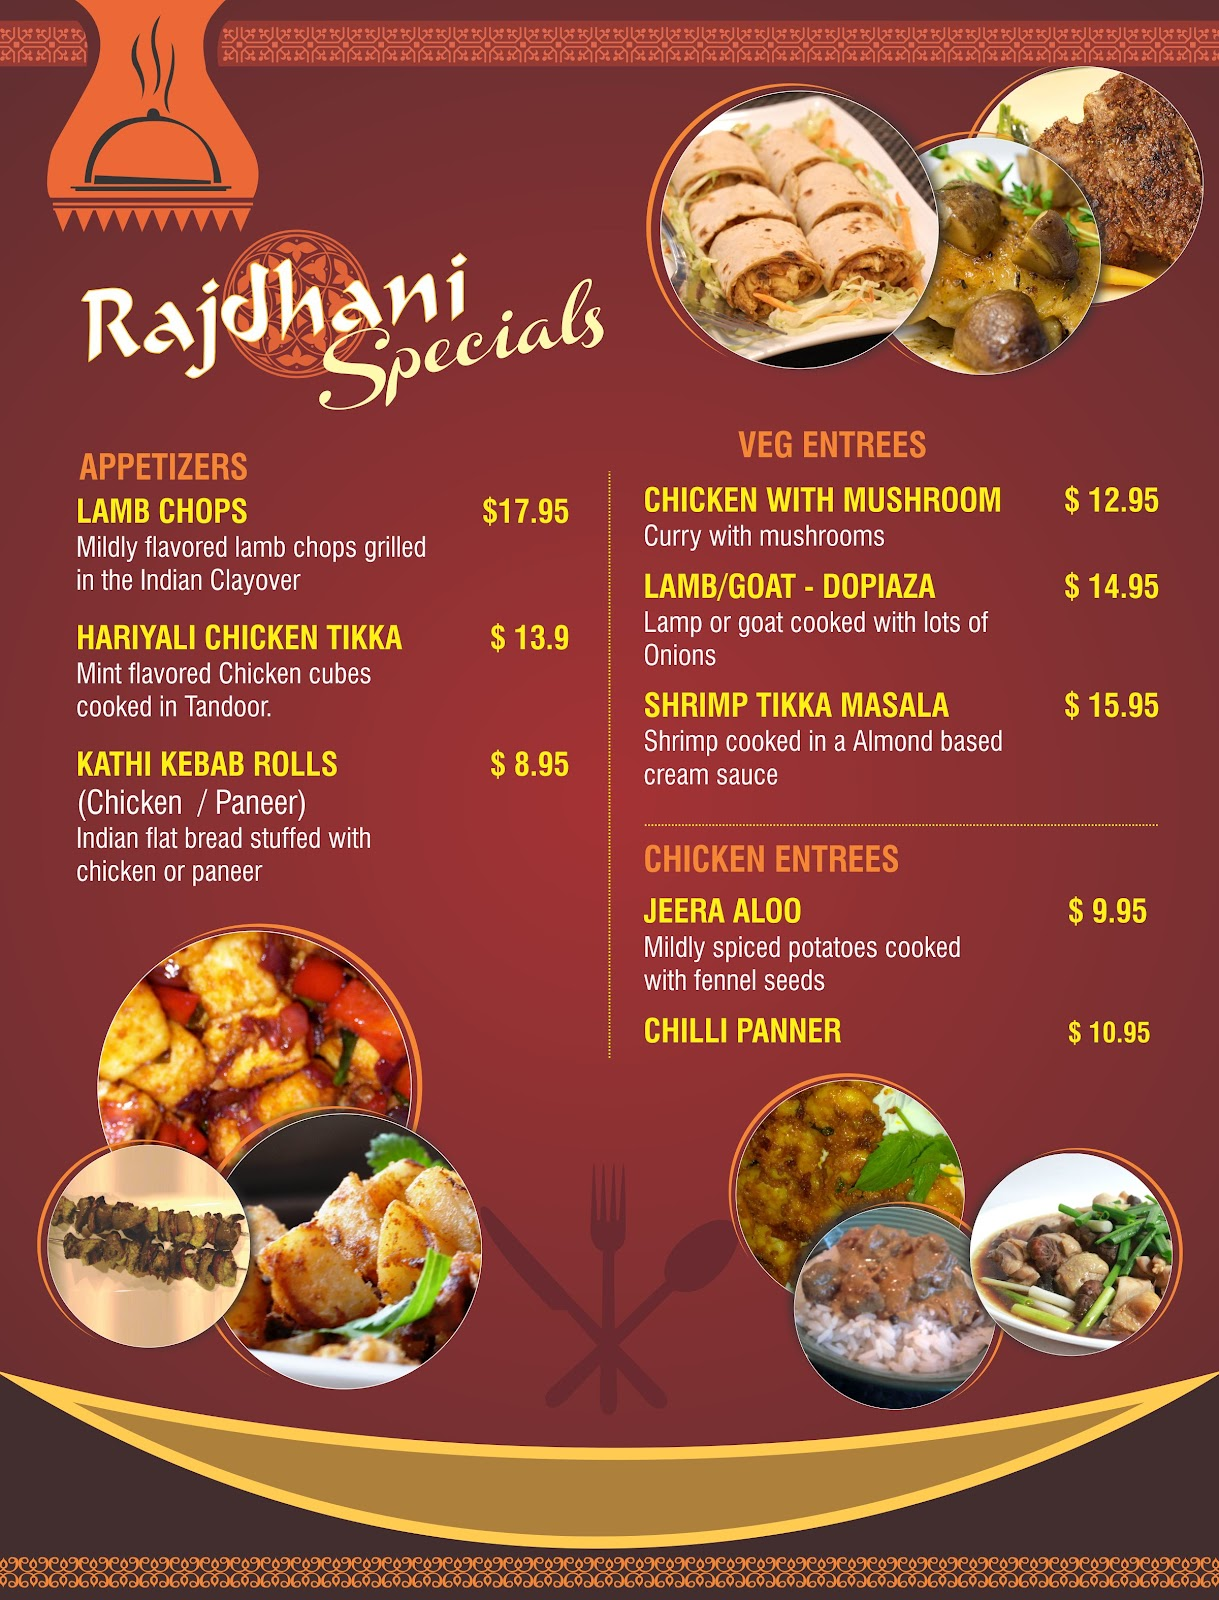 PRASANTH KUMAR: RESTAURANT MENU CARDS